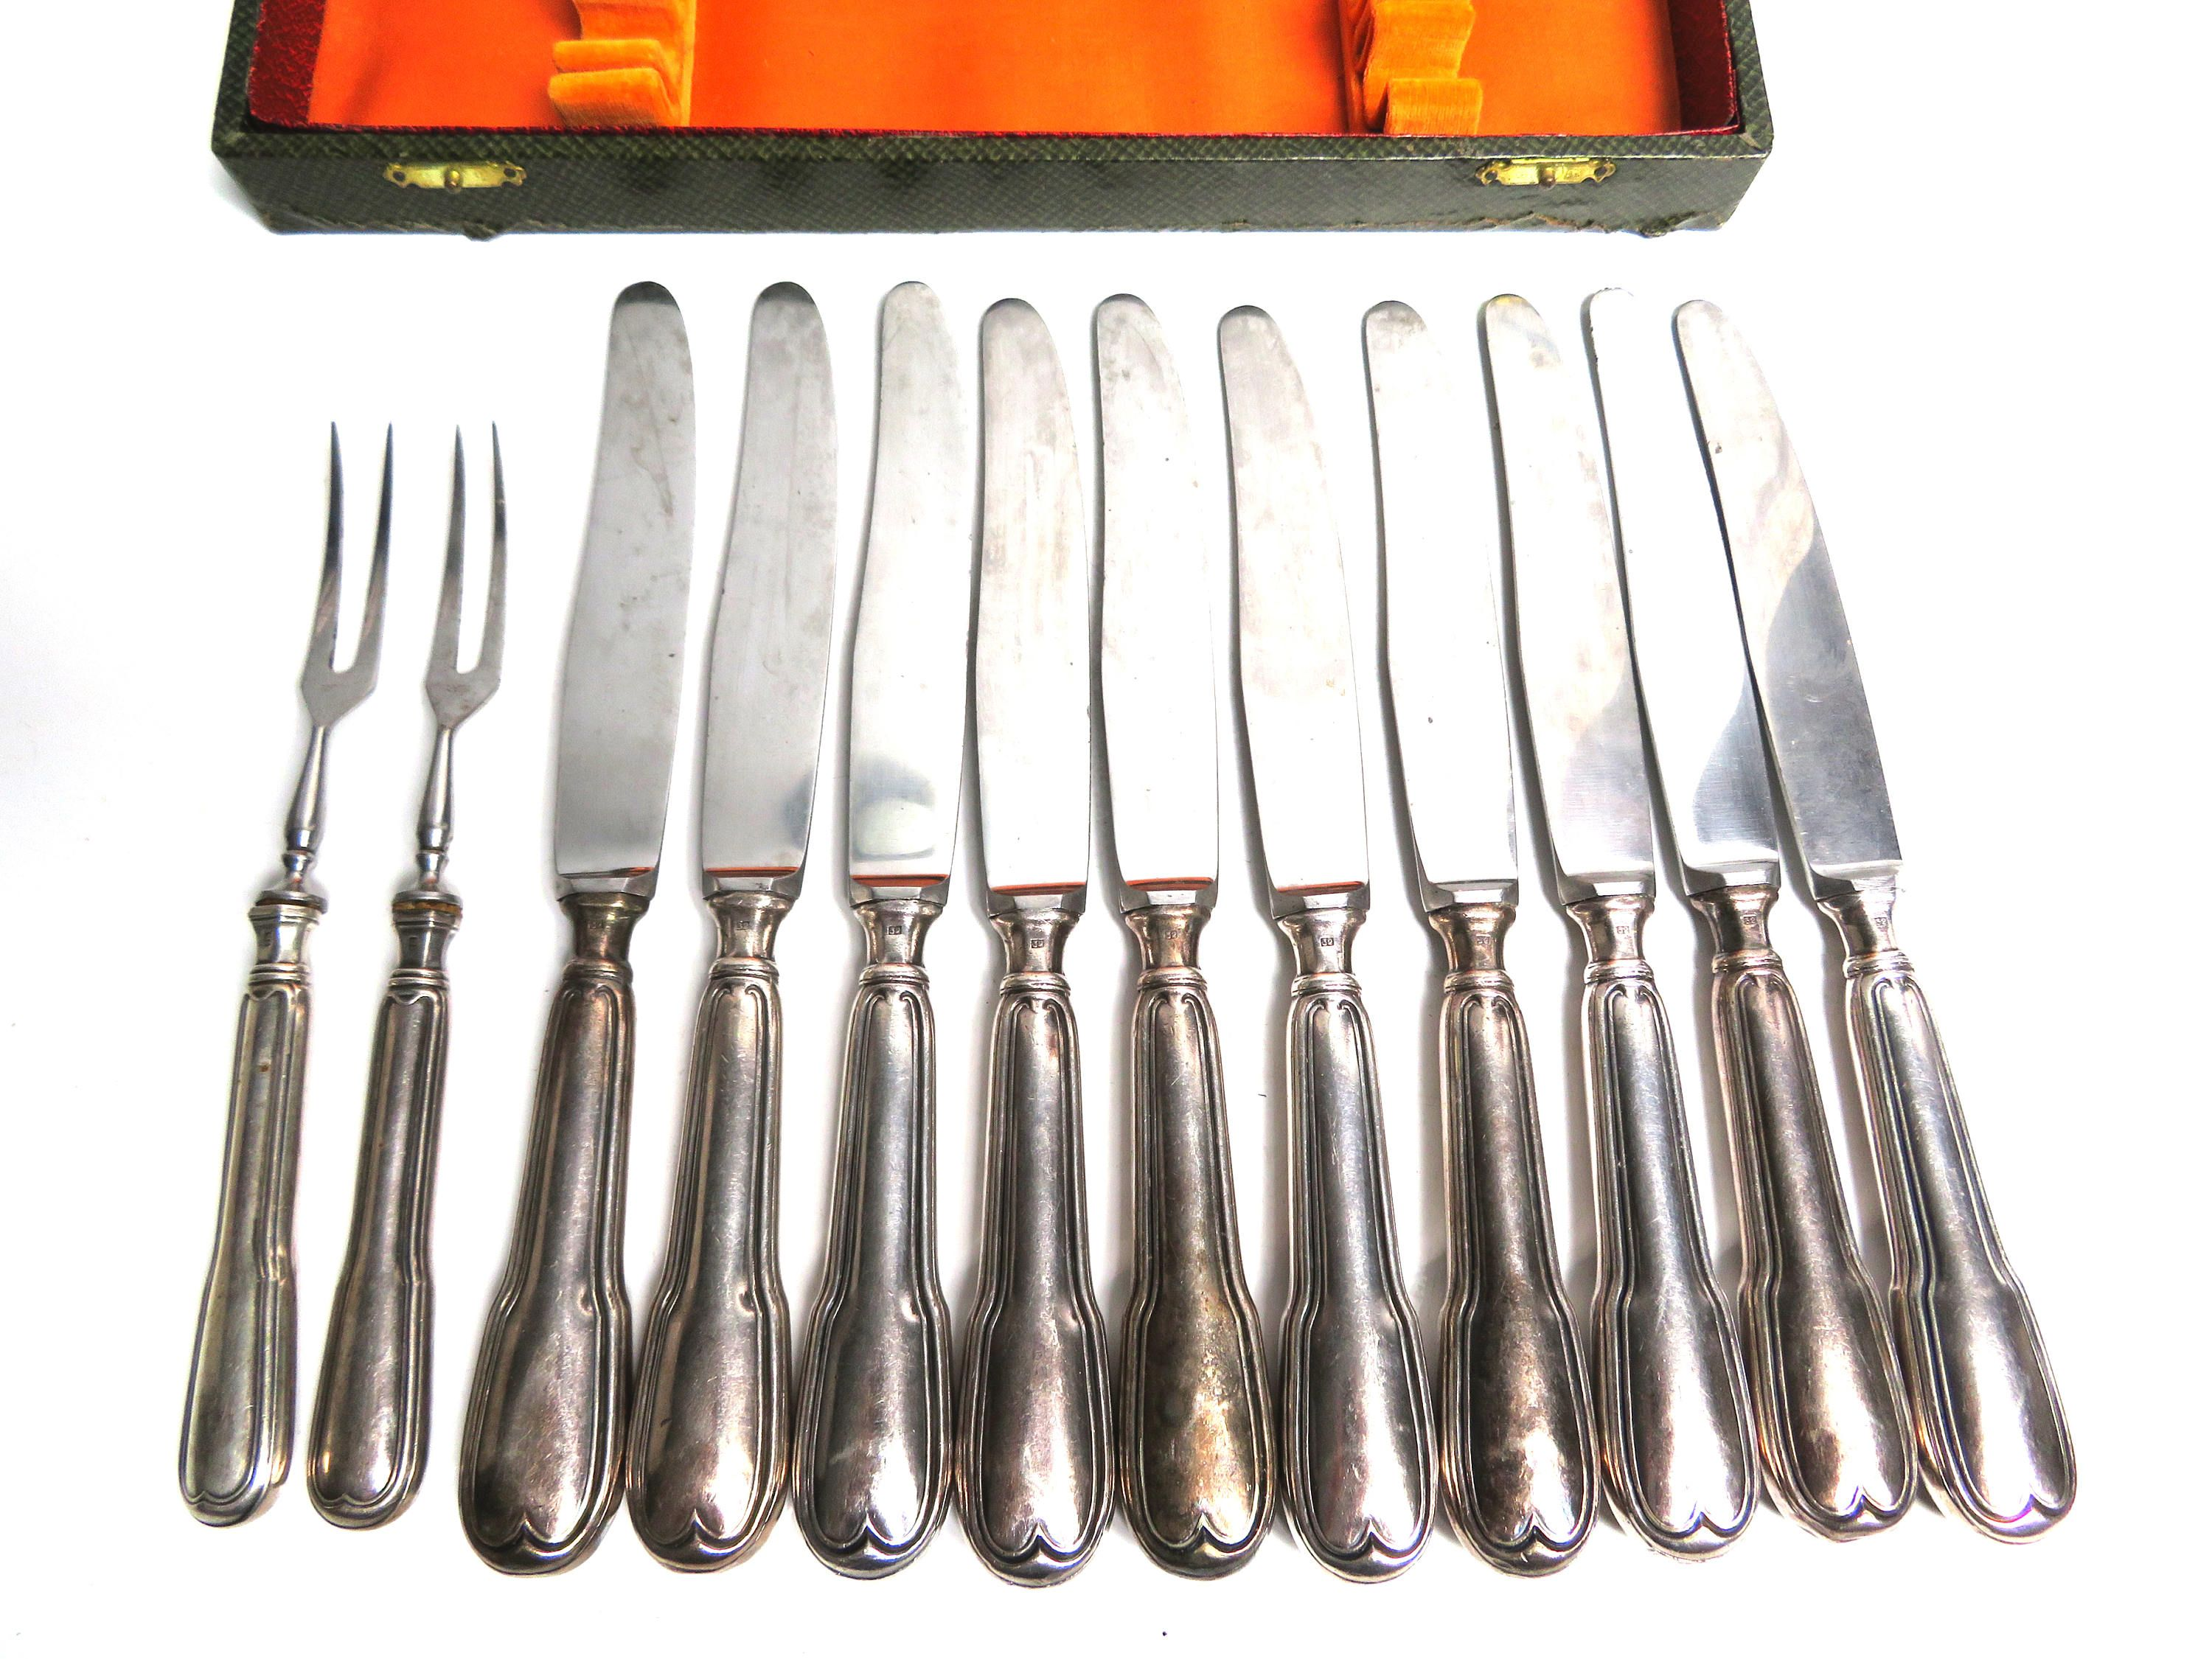 10 Silver Plate Dinner Knife Inox Blade 2 Rostfrei Germany Forks